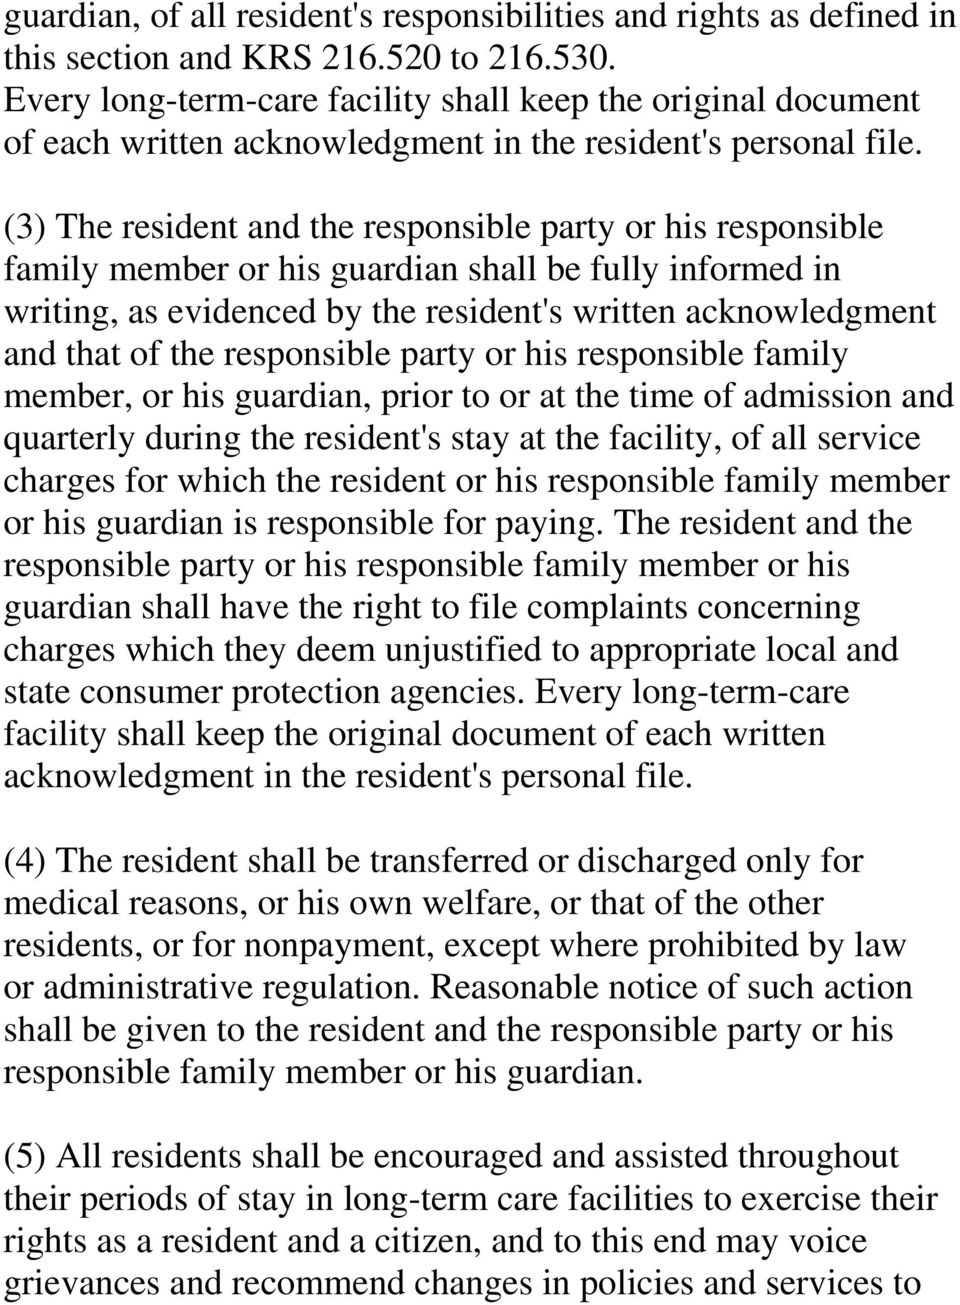 (3) The resident and the responsible party or his responsible family member or his guardian shall be fully informed in writing, as evidenced by the resident's written acknowledgment and that of the